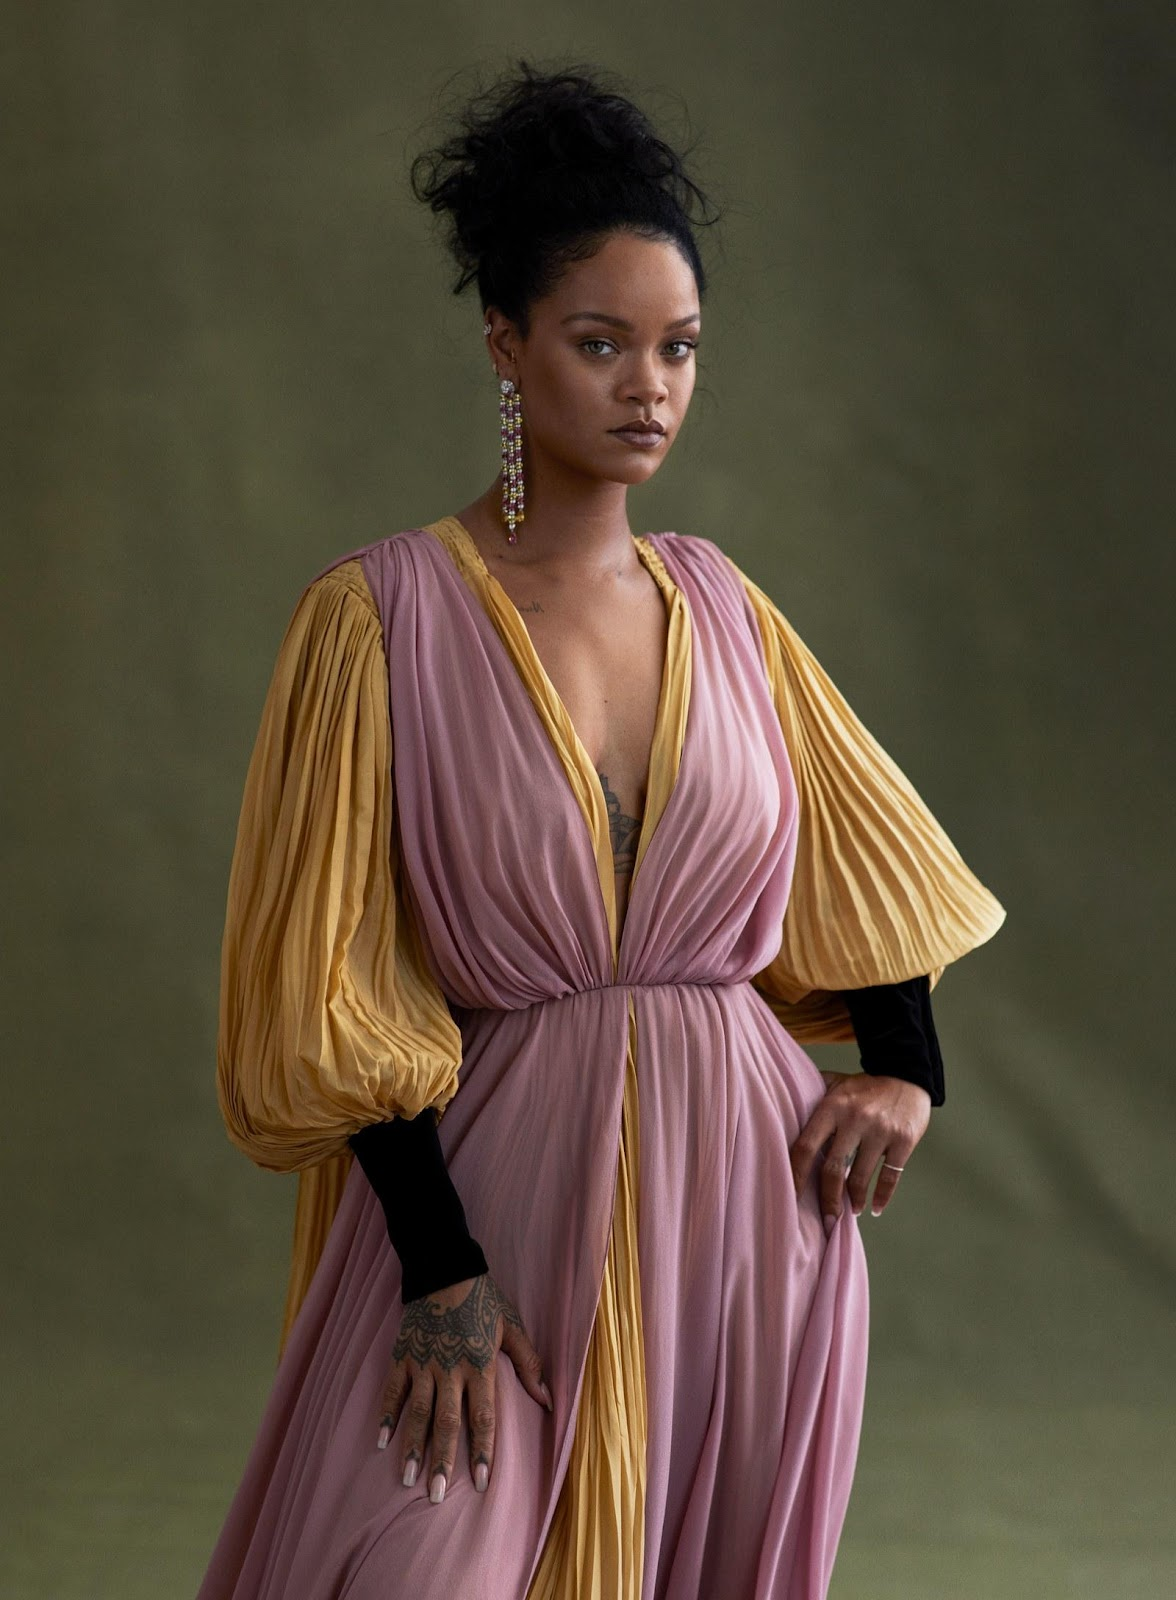 Future Perfect   Rihannas decision to be Fentys muse says Diors Maria Grazia Chiuri speaks to the increasing need for...